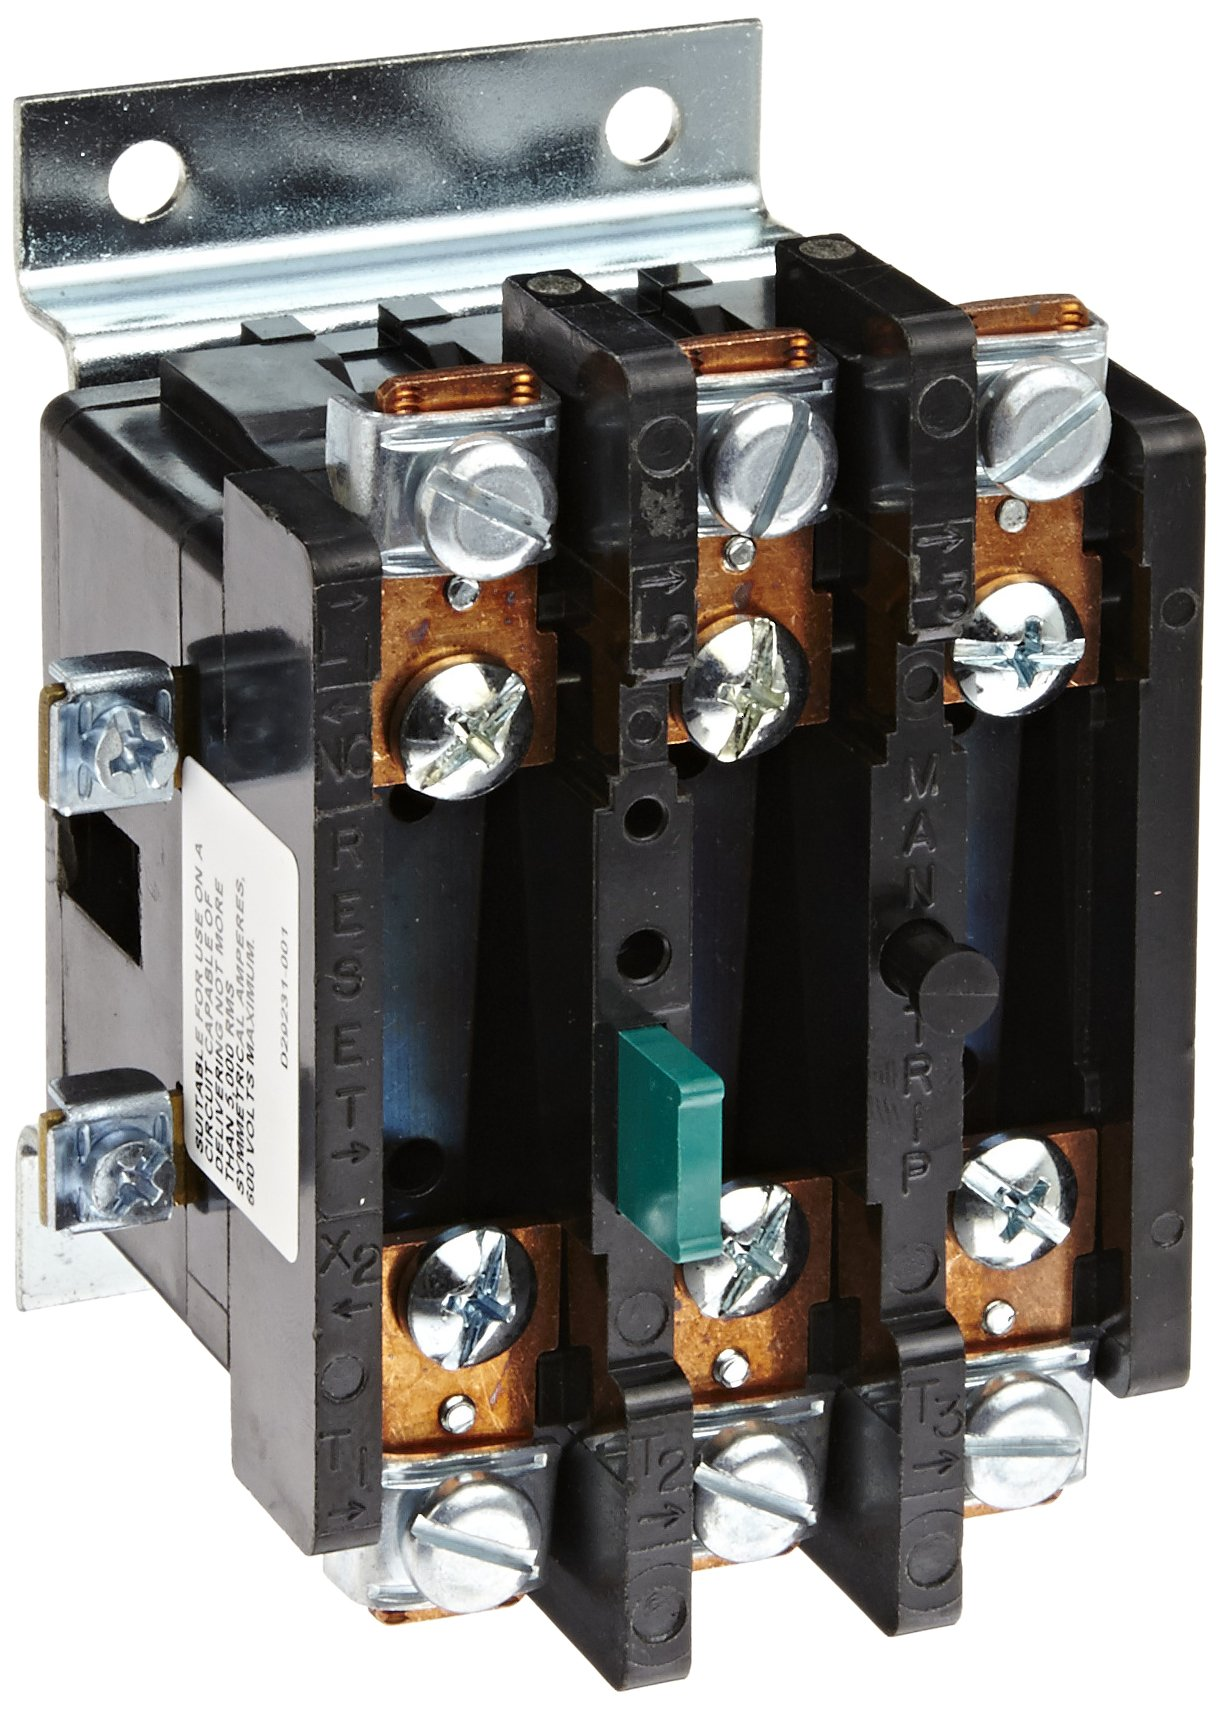 Siemens 48DC38AA4 Ambient Compensated Bimetal Overload Relay, Open Type, Single and 3 Phase, 3 Poles, 30 Amp Rating, 1 NC Auxiliary Contacts, 10A (A600) & 5A (P300) Contact Rating